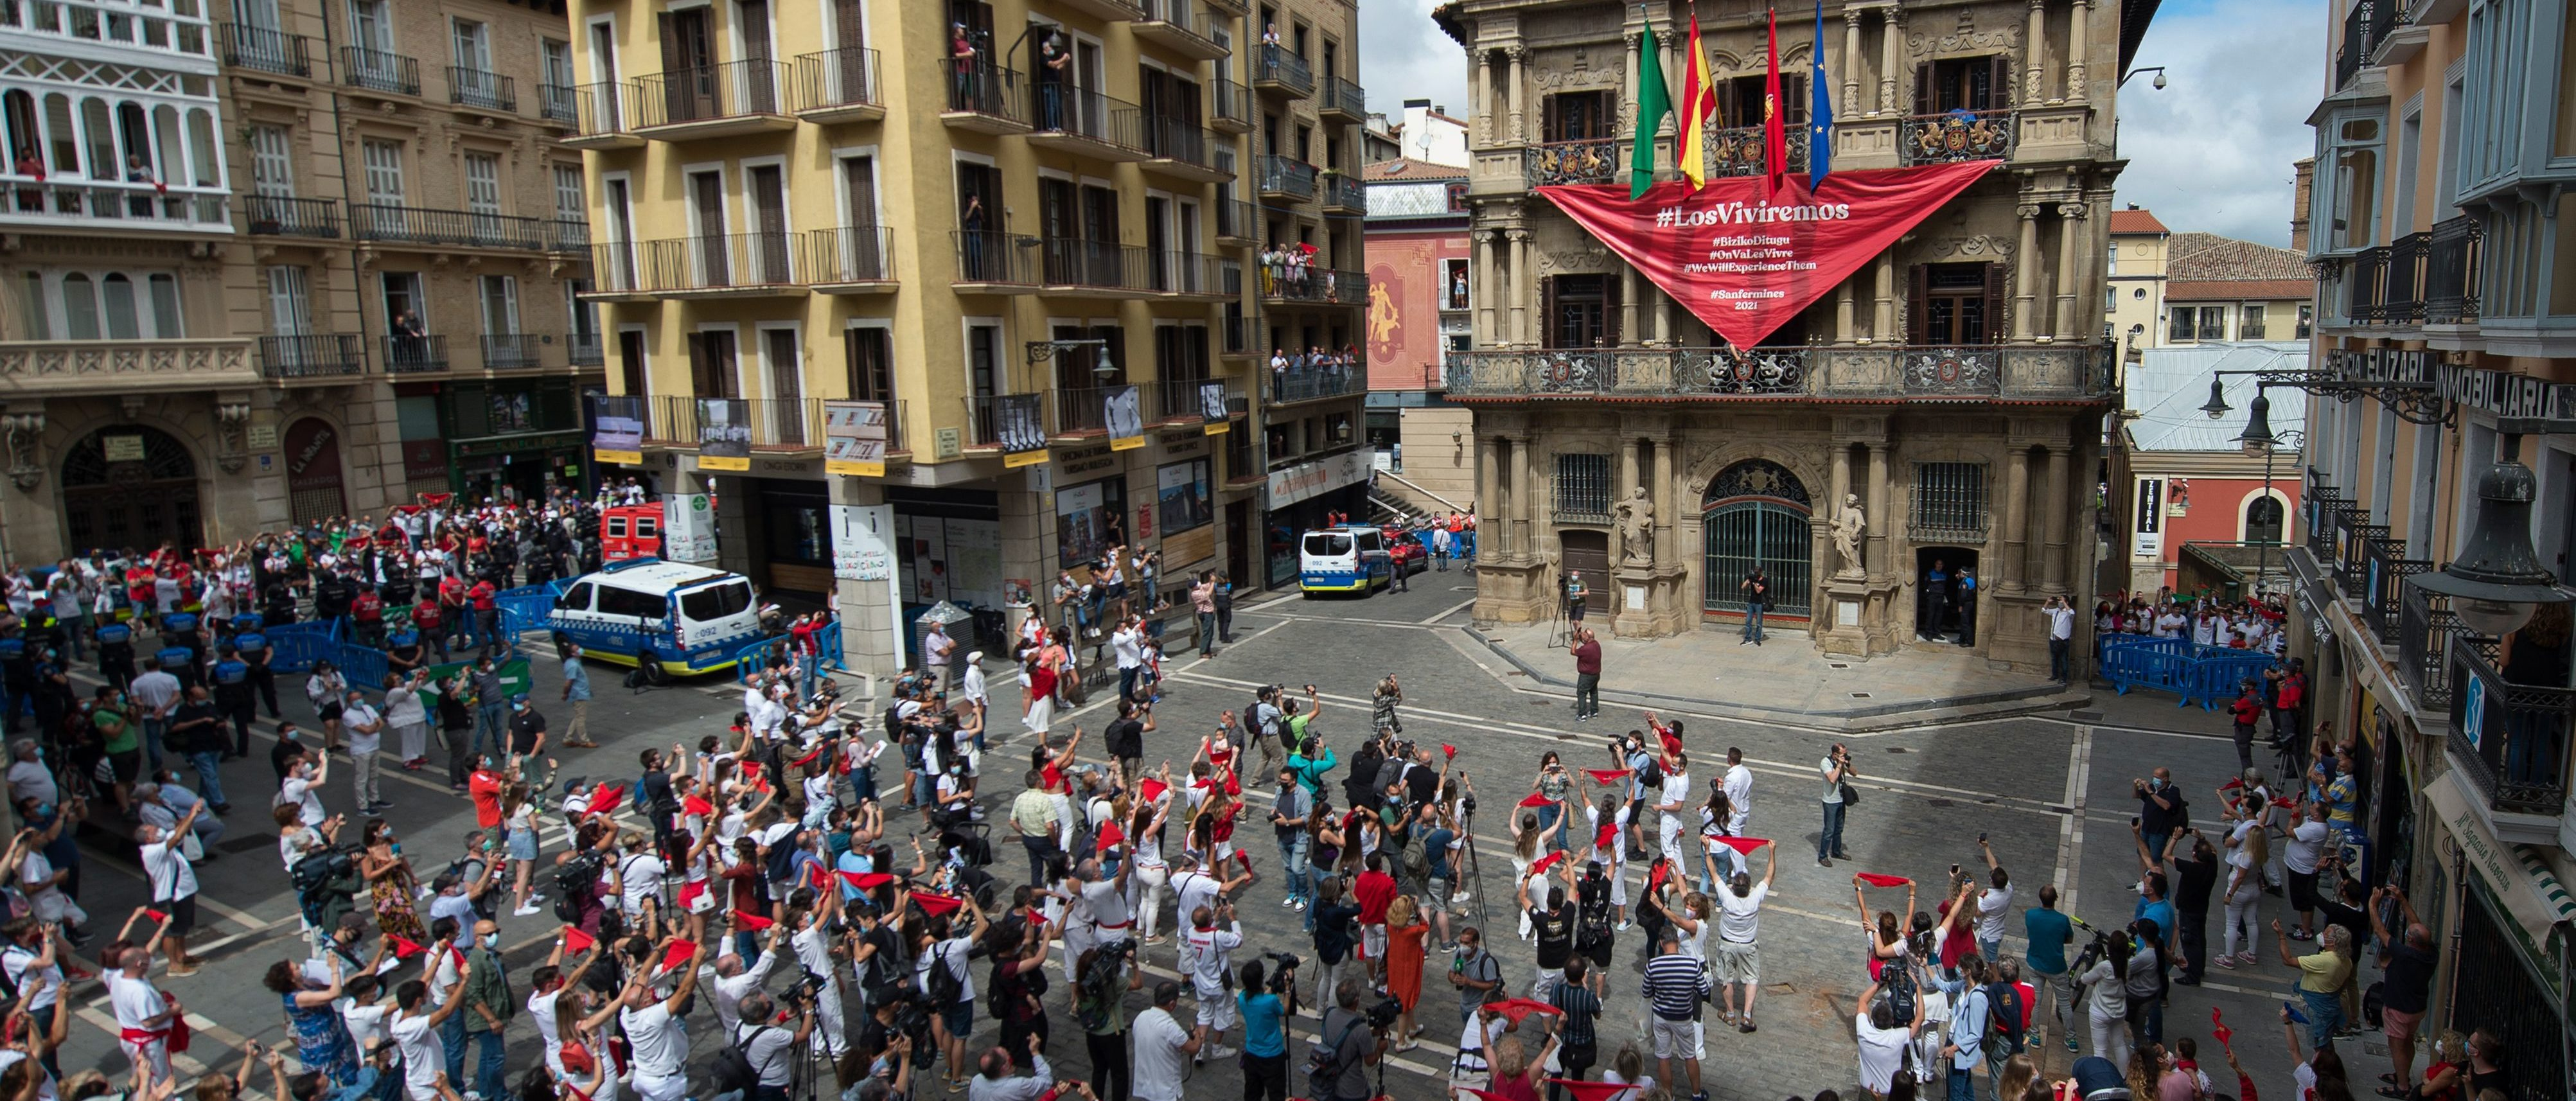 Running Without The Bulls? Hundreds Flock To Pamplona Streets Even After Centuries-Old Tradition Canceled